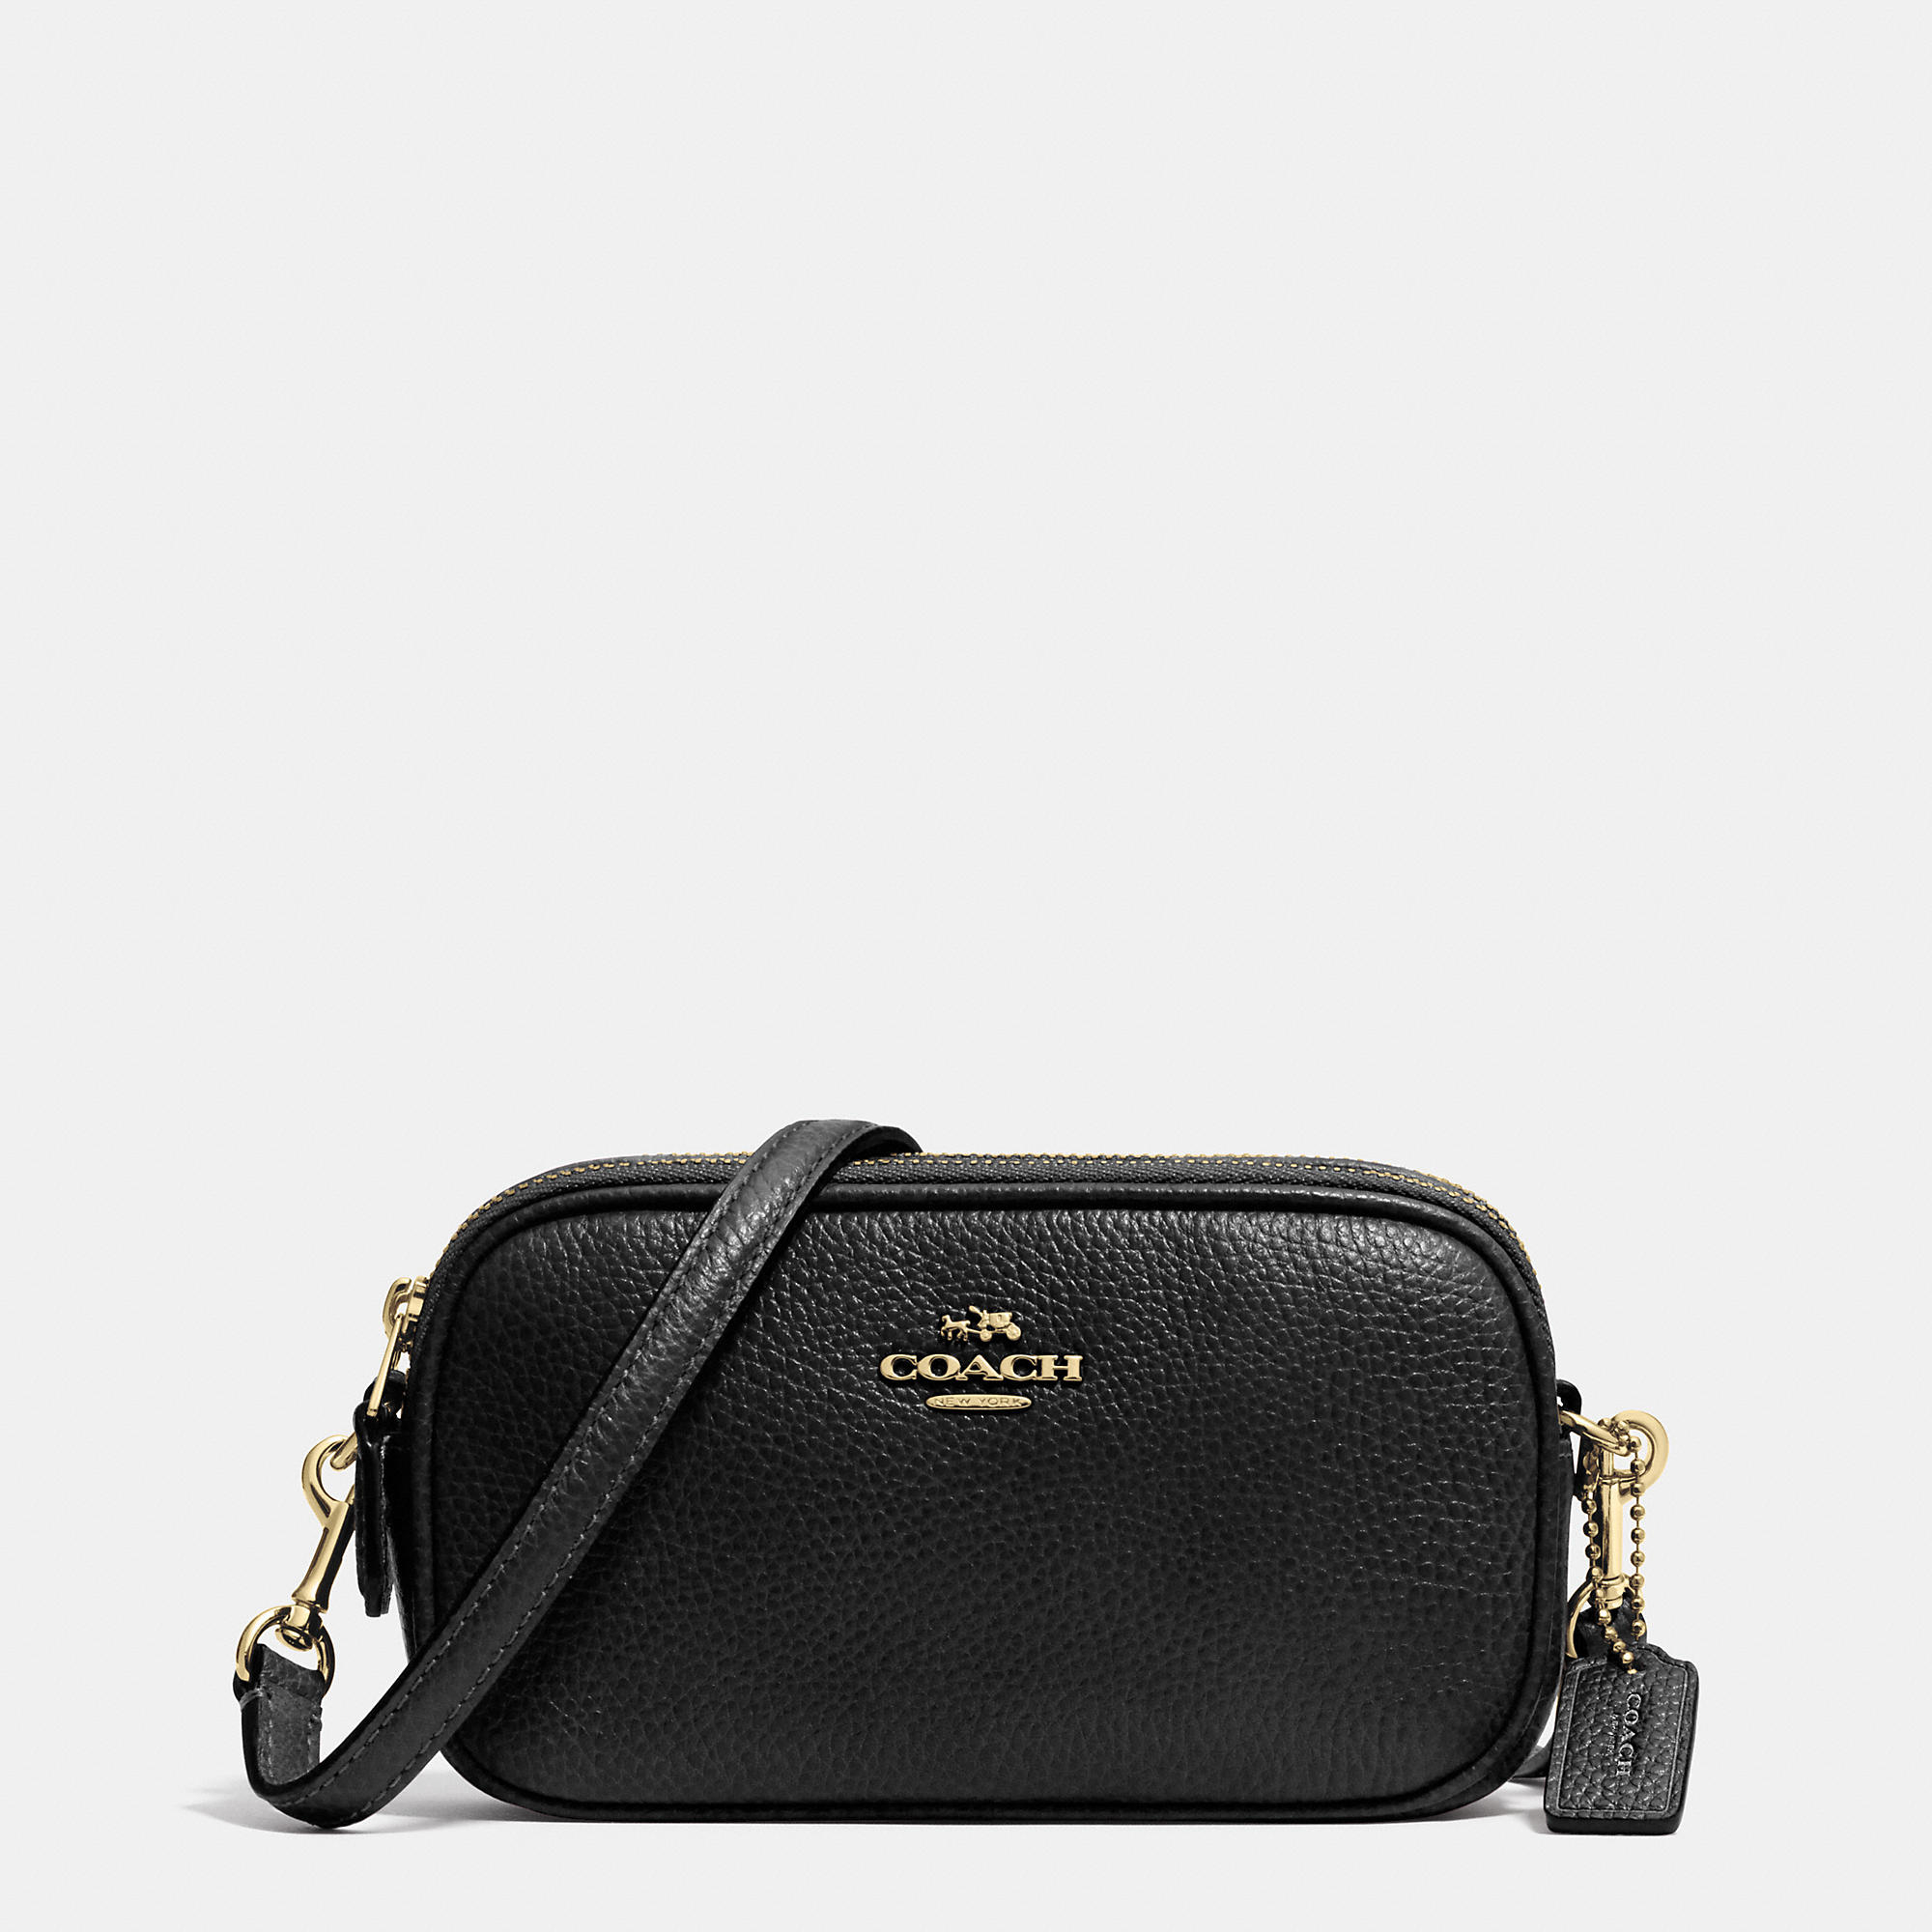 Lyst - COACH Crossbody Pouch In Pebble Leather in Black aa358b17a282